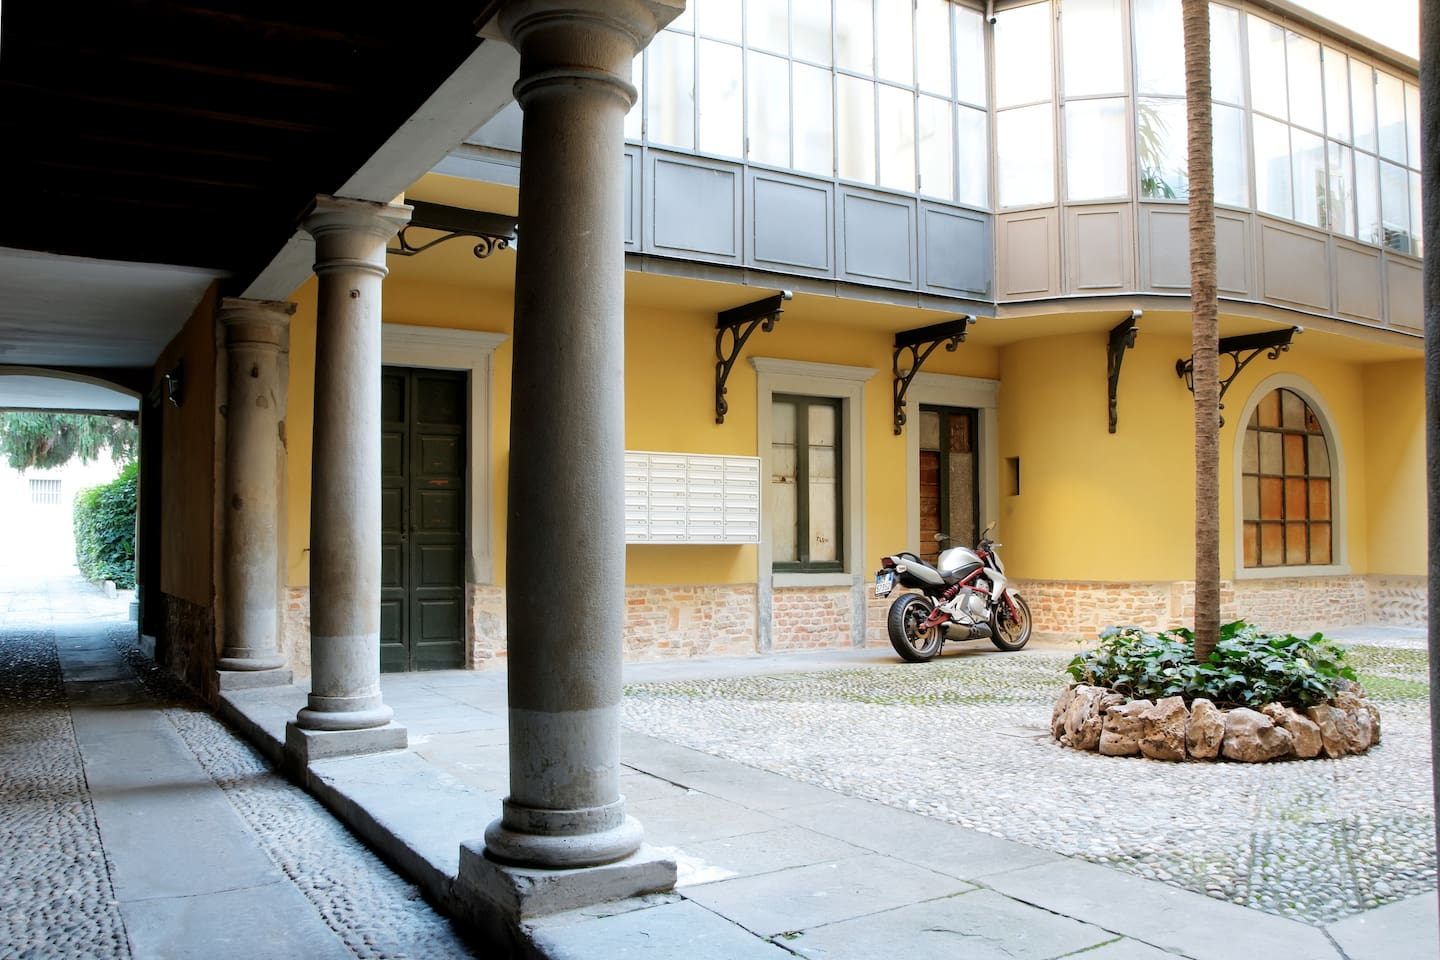 Internal place with parking bikes and motorcycles.- Cortile interno con posto bici e moto.